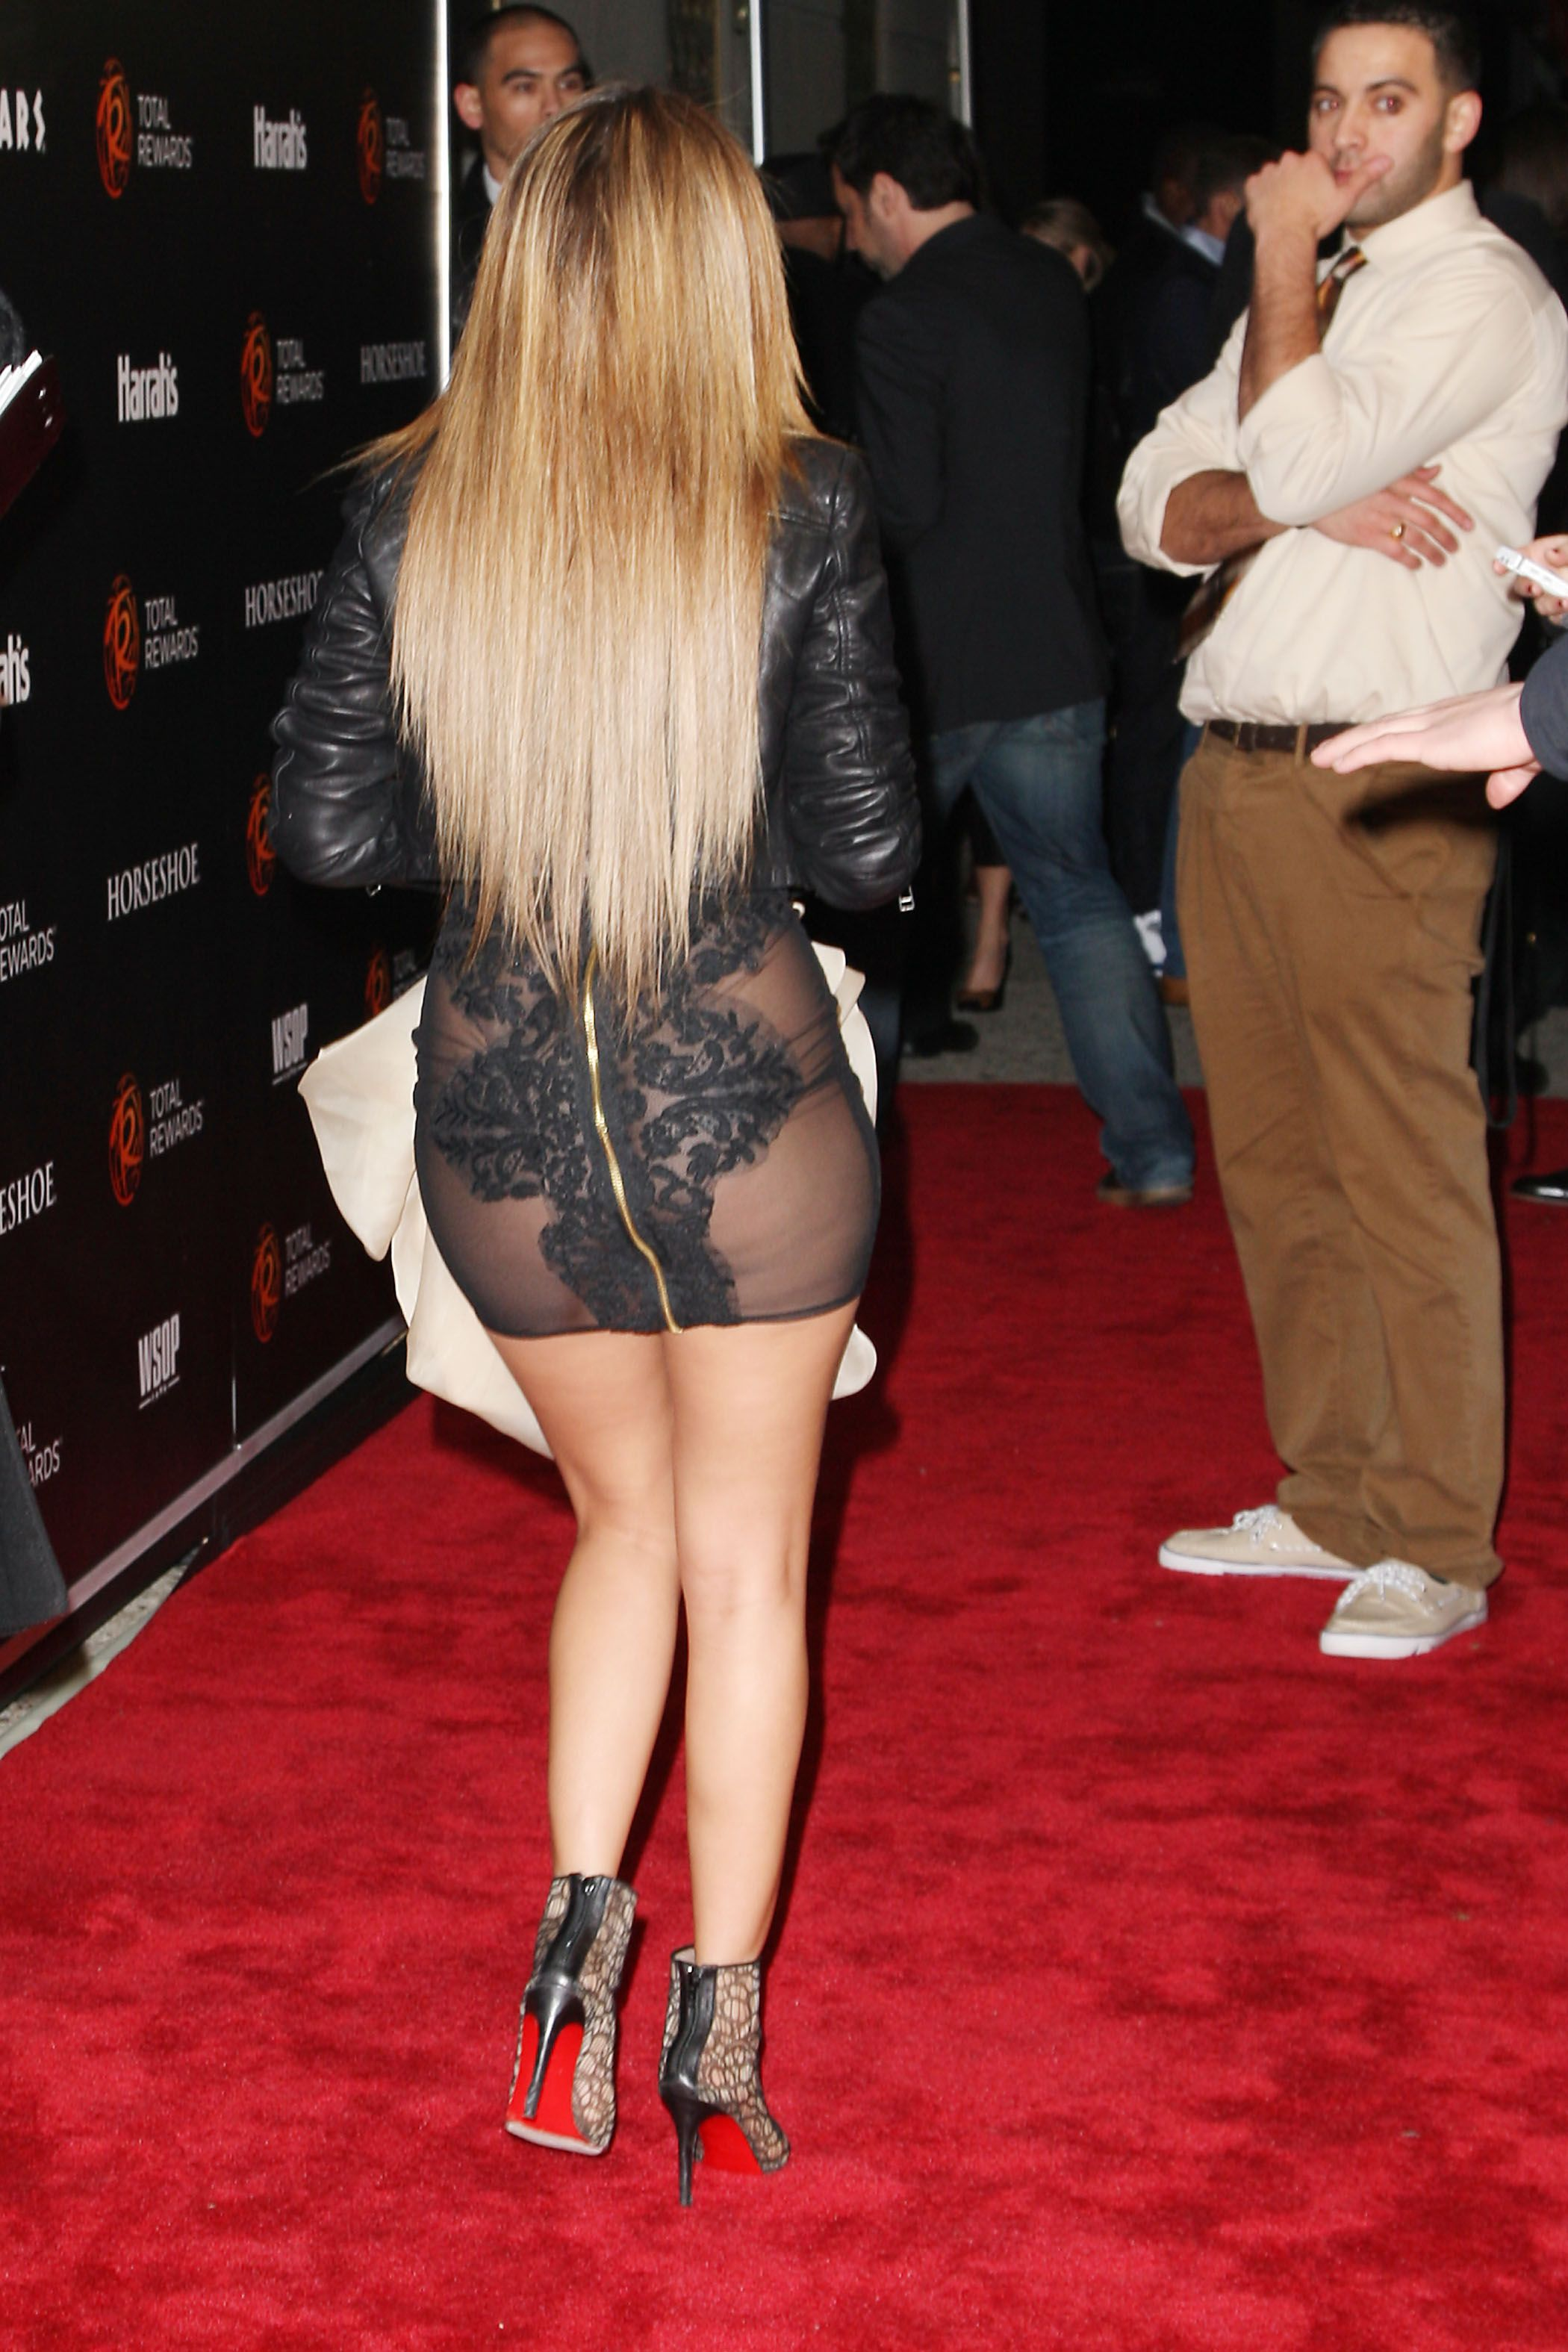 Fotos Adrienne Bailon nudes (76 photos), Ass, Sideboobs, Selfie, butt 2015